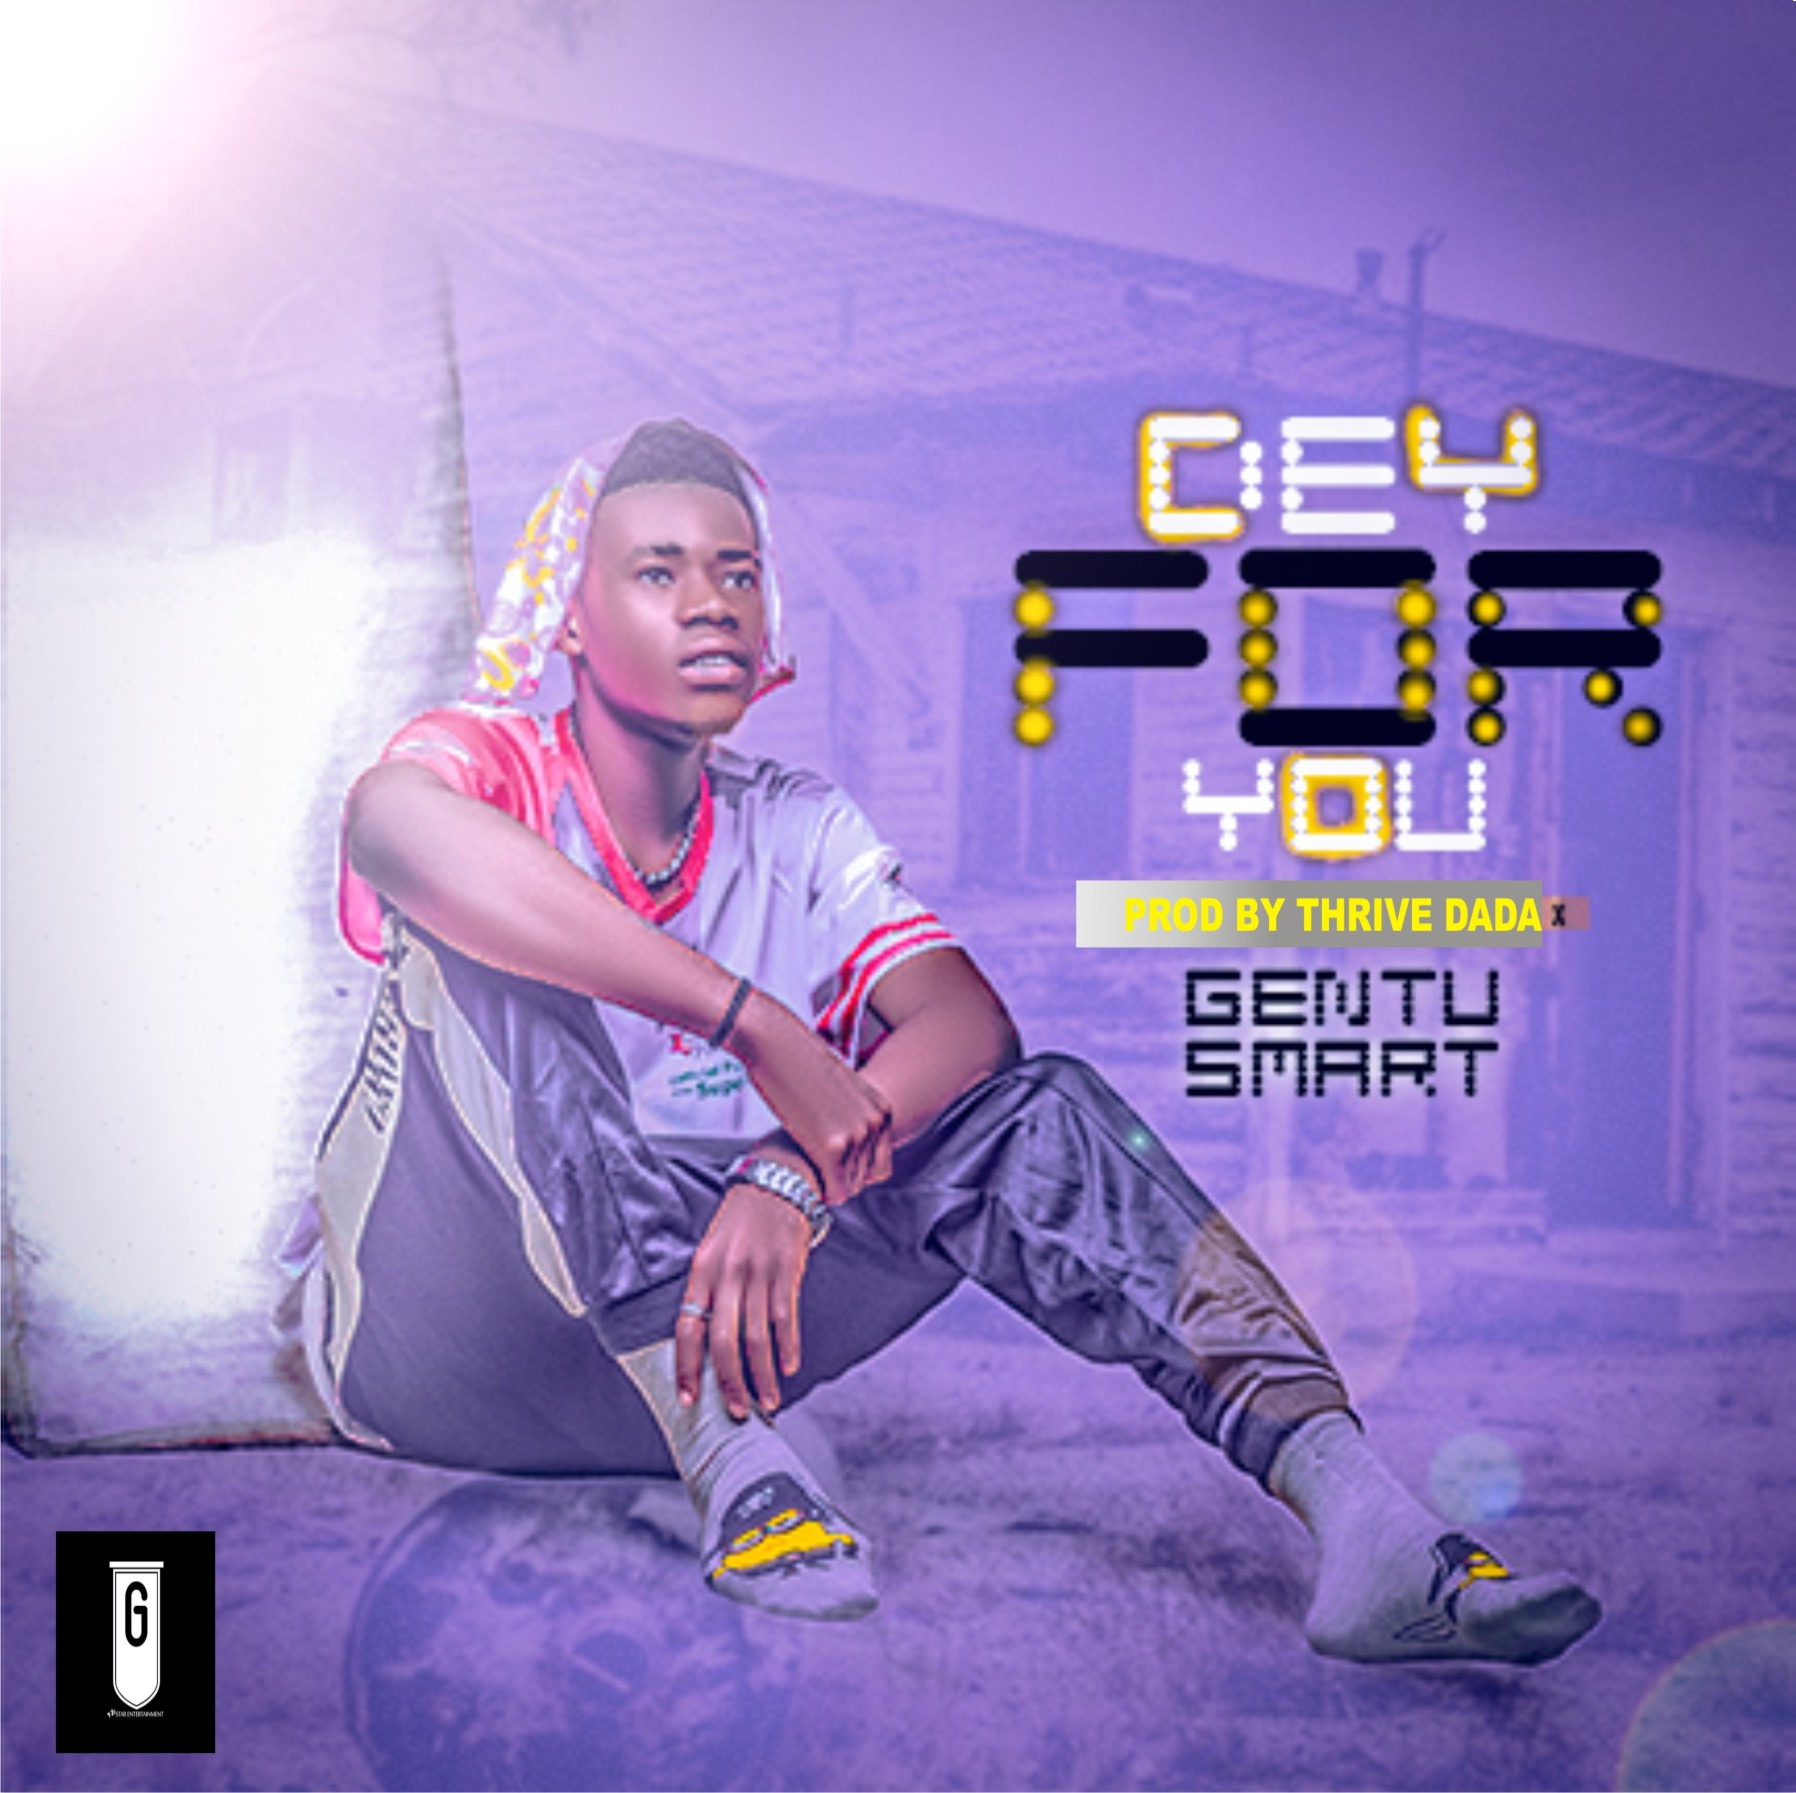 Gentusmart - Dey for you ft Stevo Blues